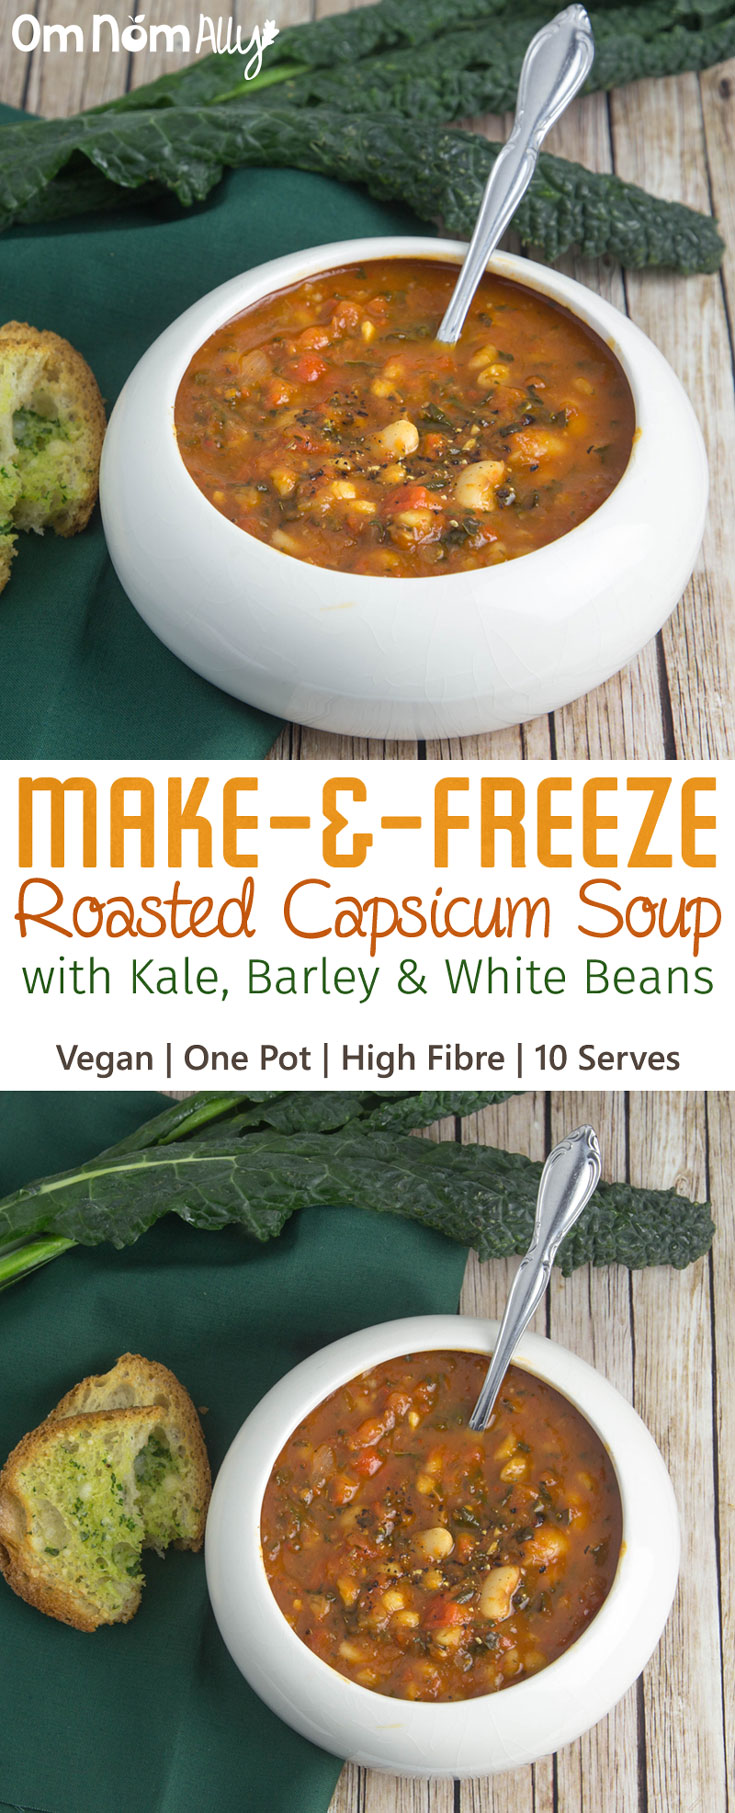 Make-and-Freeze Roasted Capsicum Soup with Kale, Barley & White Beans @OmNomAlly is Vegan, High Fibre and makes 10 serves from one pot!